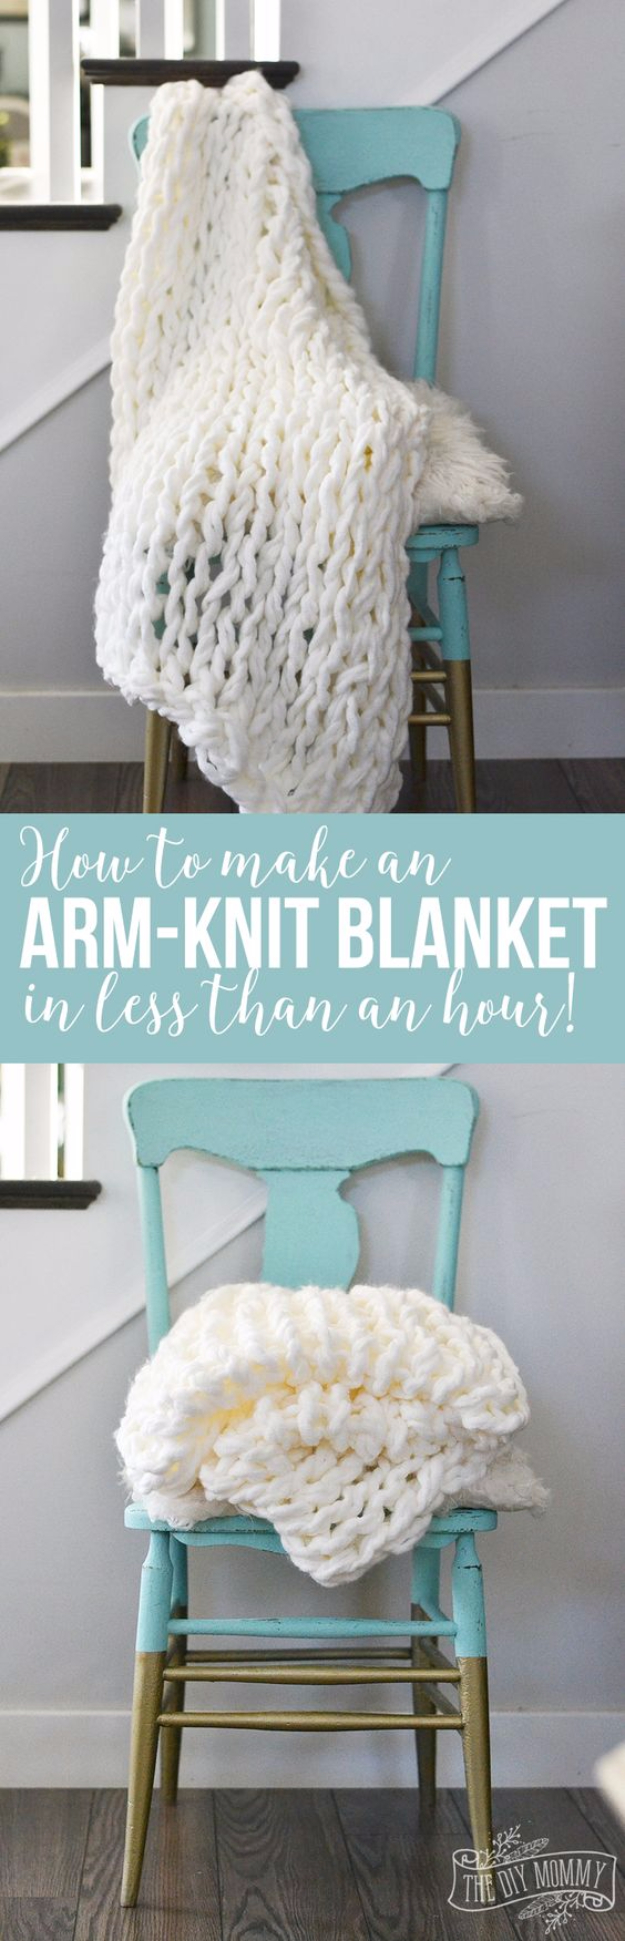 32 Easy Knitted Gifts - Arm Knit Blanket In Less Than An Hour - Last Minute Knitted Gifts, Best Knitted Gifts For Anyone, Easy Knitted Gifts To Make, Knitted Gifts For Friends, Easy Knitting Patterns For Beginners, Quick Knitting Ideas #knitting #gifts #diygifts